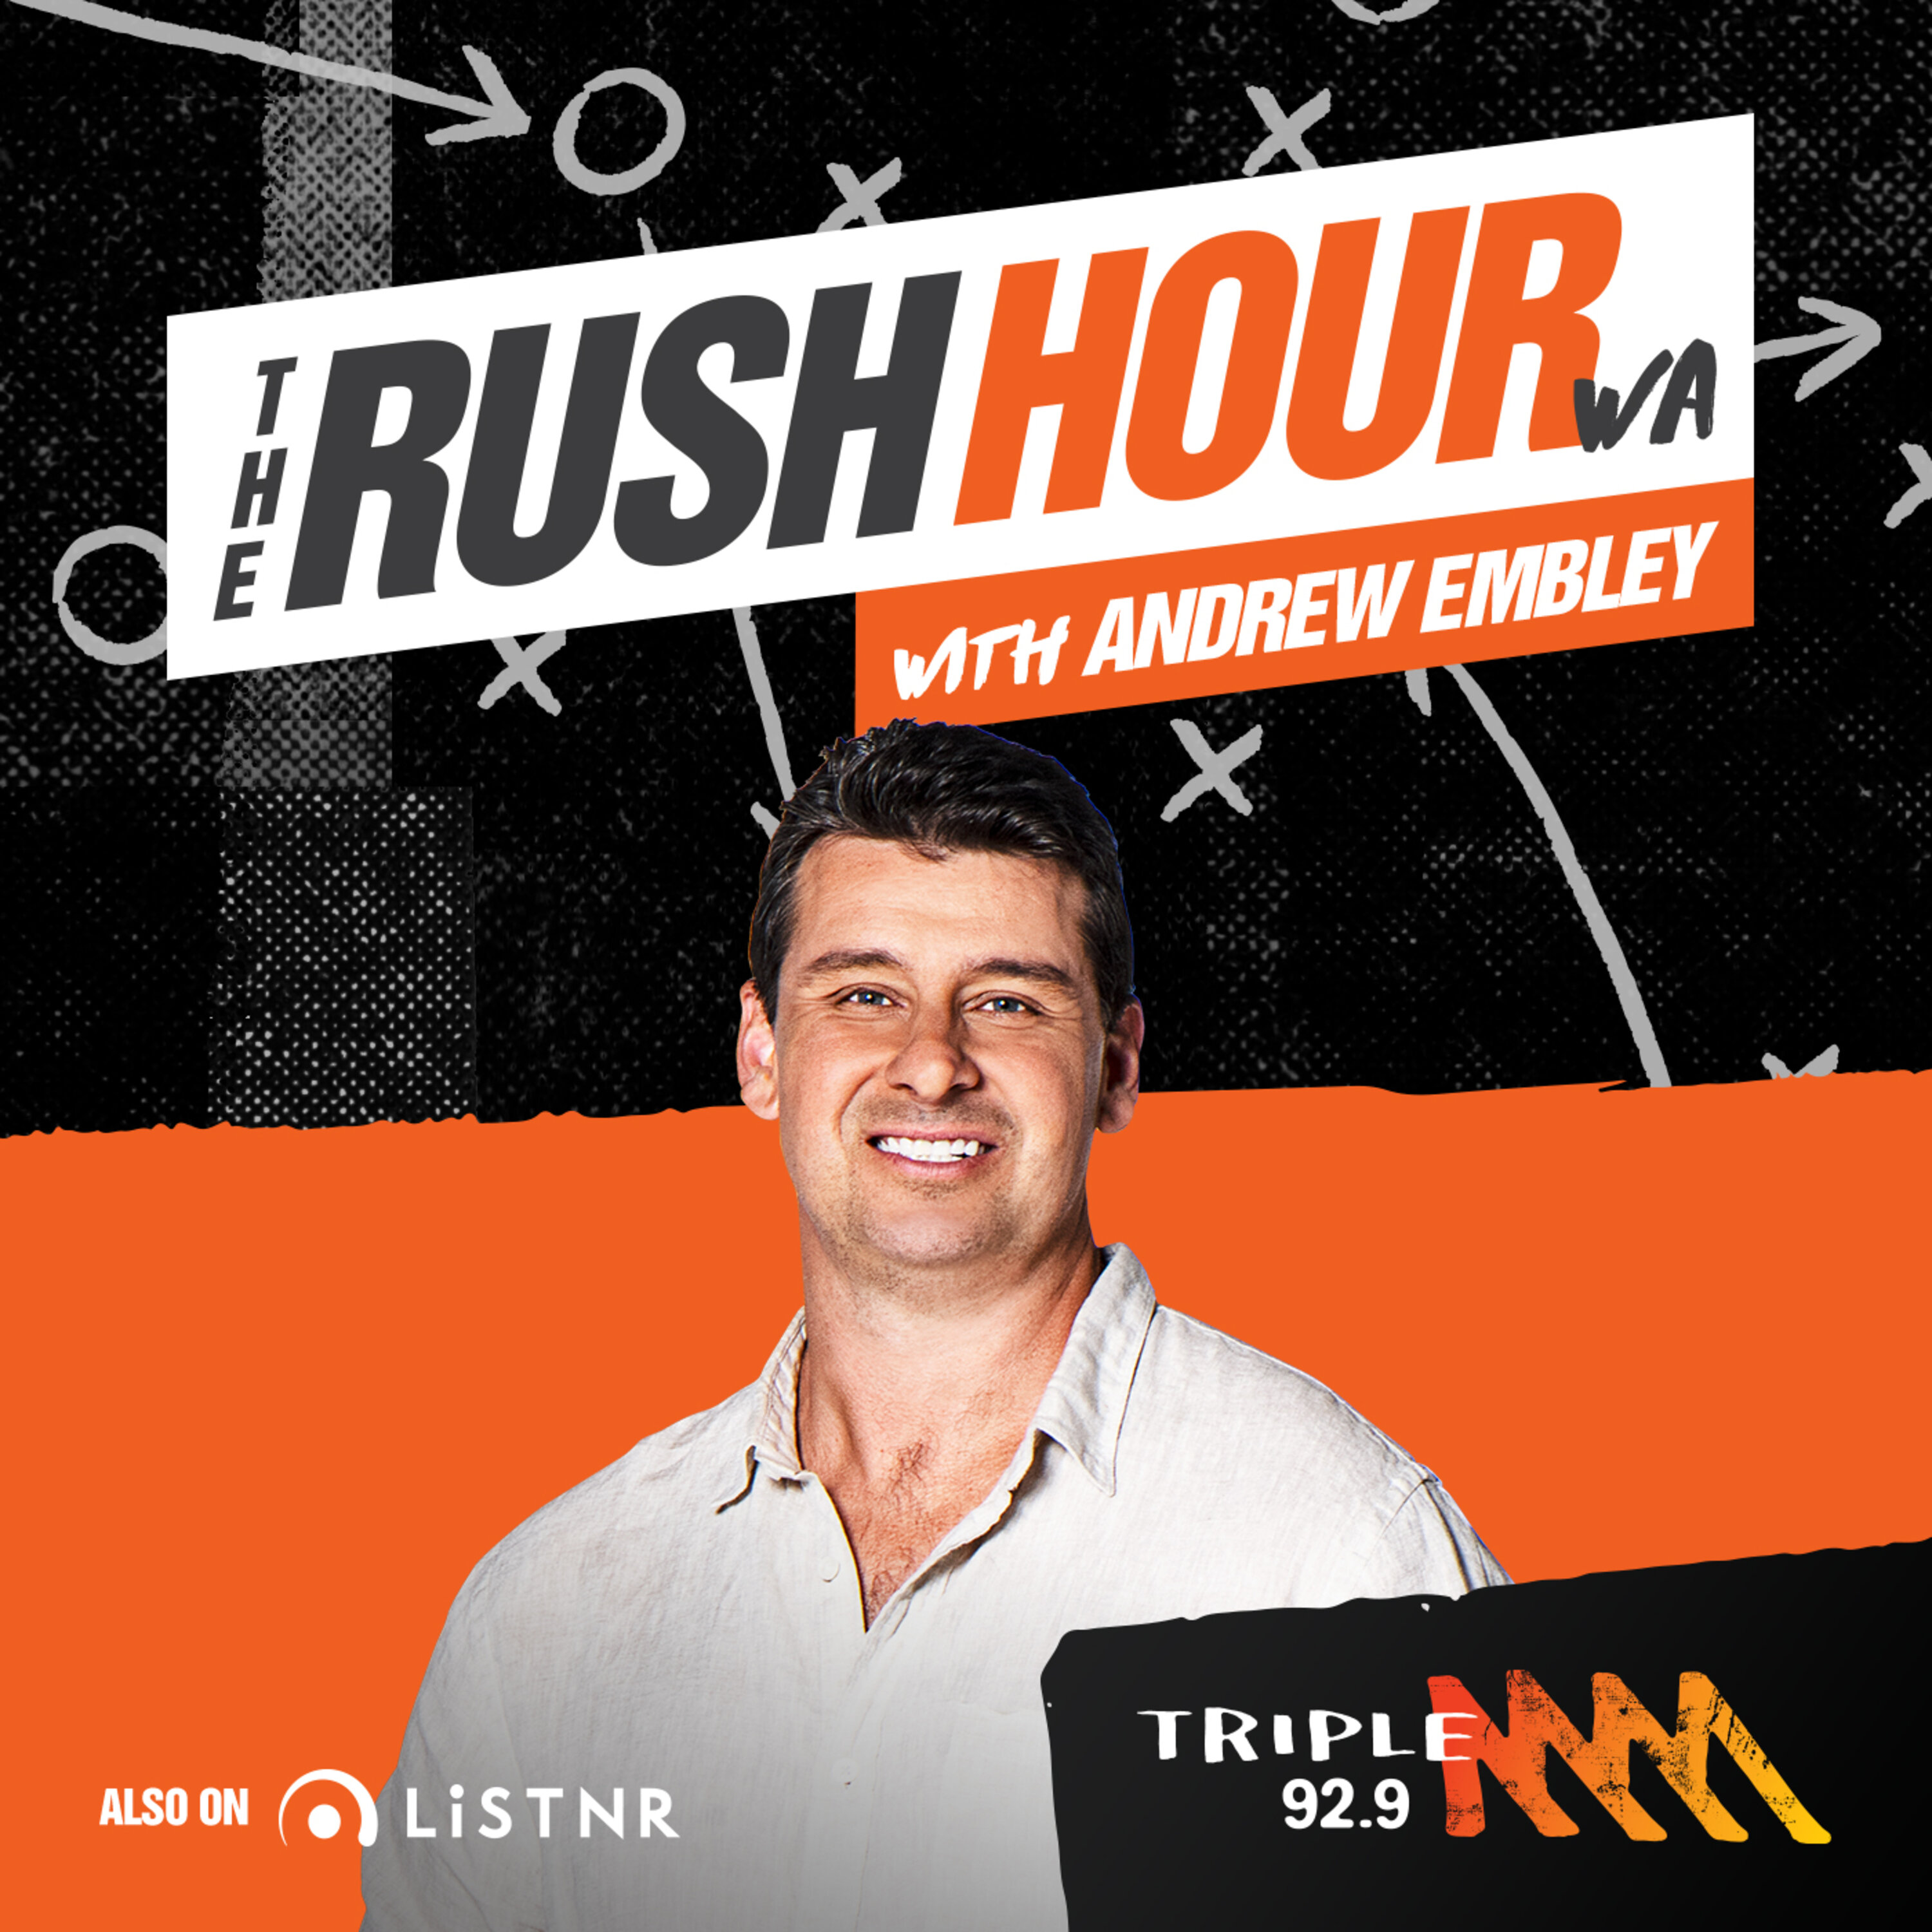 Rush Hour WA with Lachy and Embers